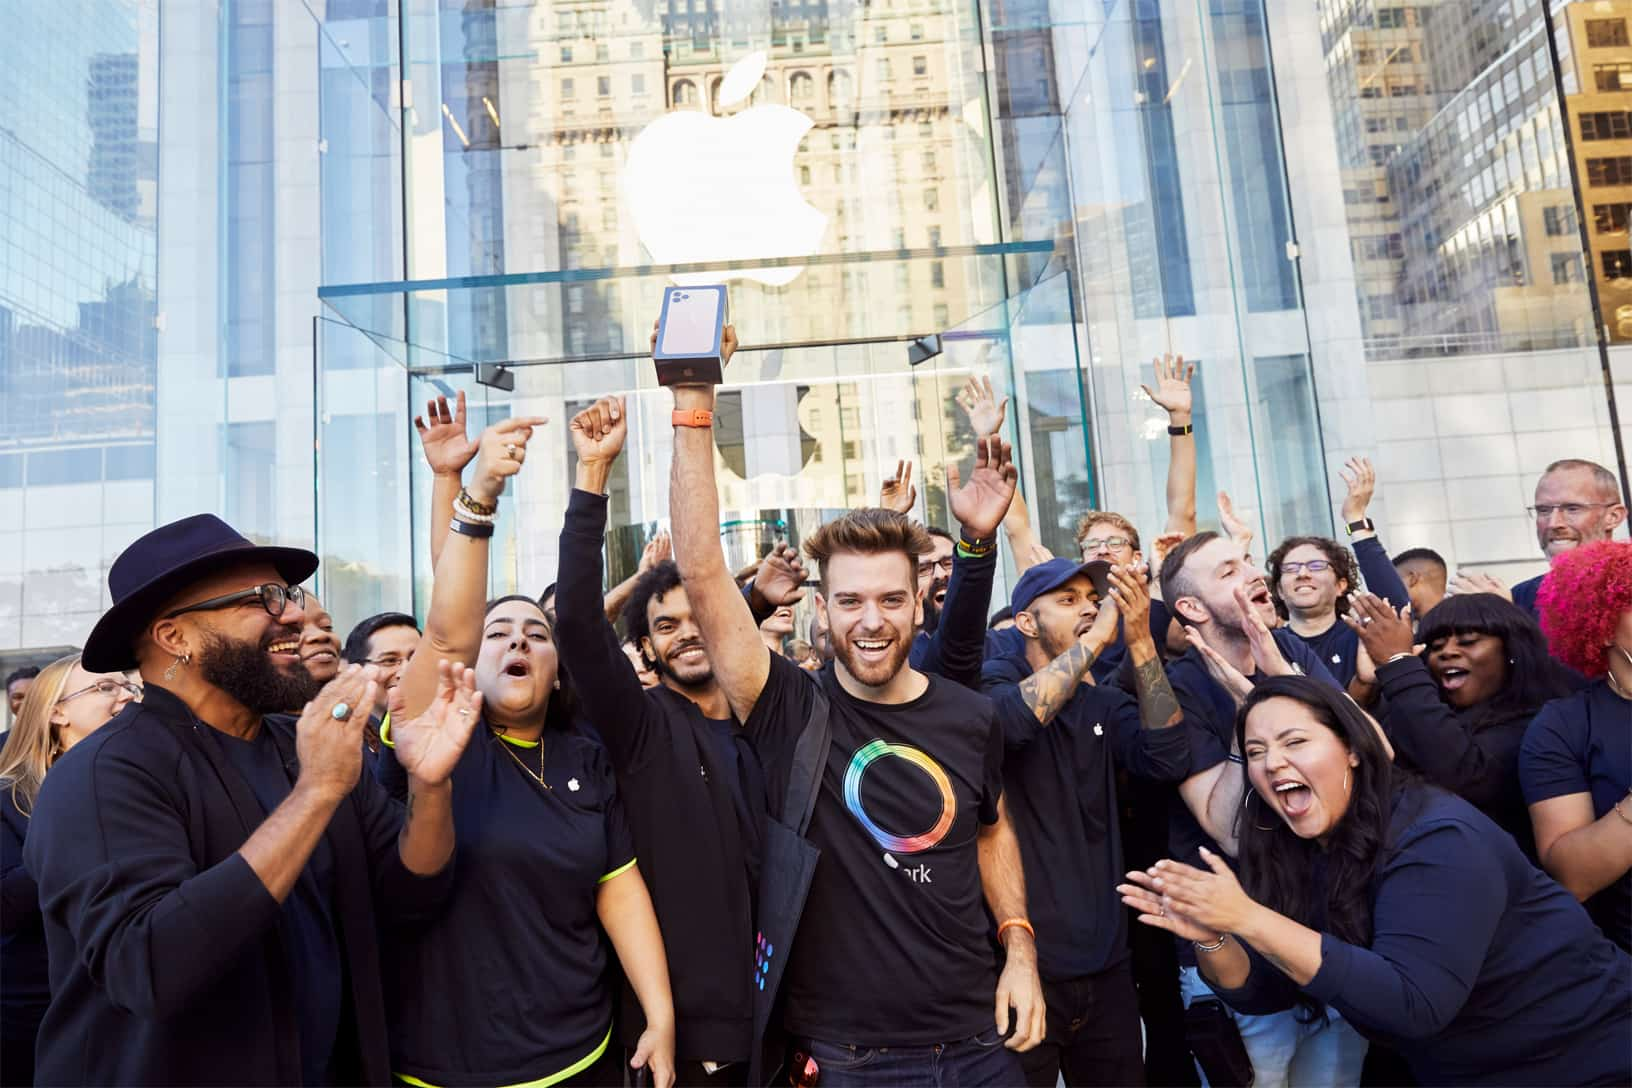 Apple Iphone 11 Pro Apple Watch 5 Availability Ny Team Members Welcomes First Guests 092019